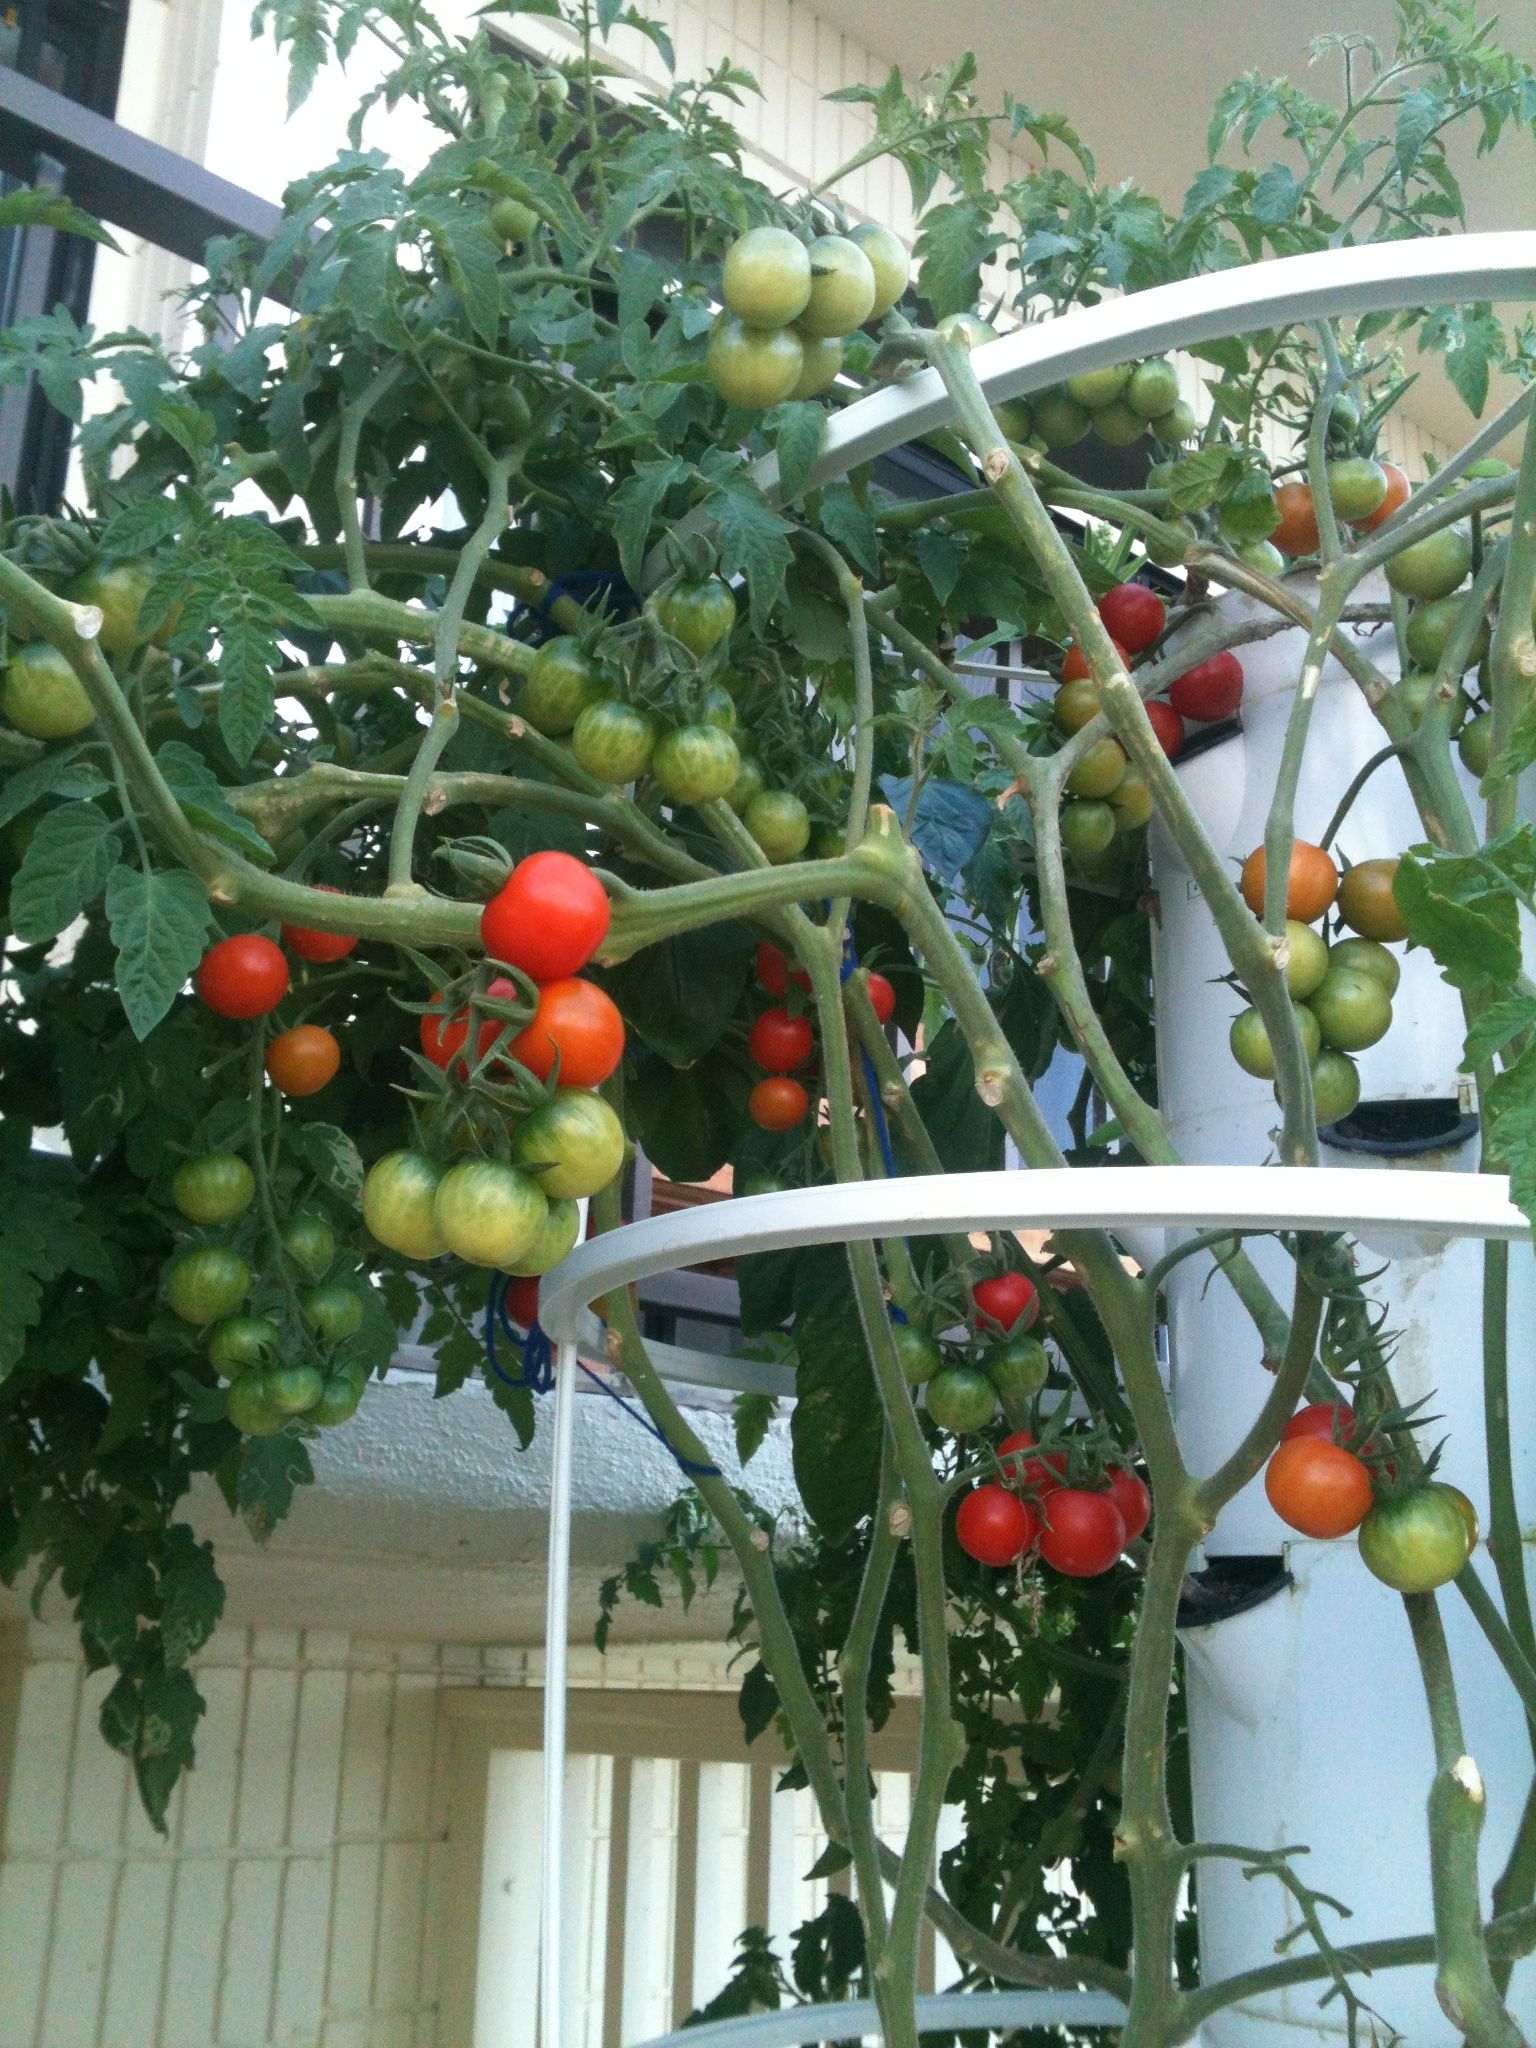 Interested In Growing Food With The Tower Garden Contact Me Spa Hawaii Rr Com Cherry Tomato Plant Cherry Tomato Plant Pruning Tomato Plants Tomato Garden